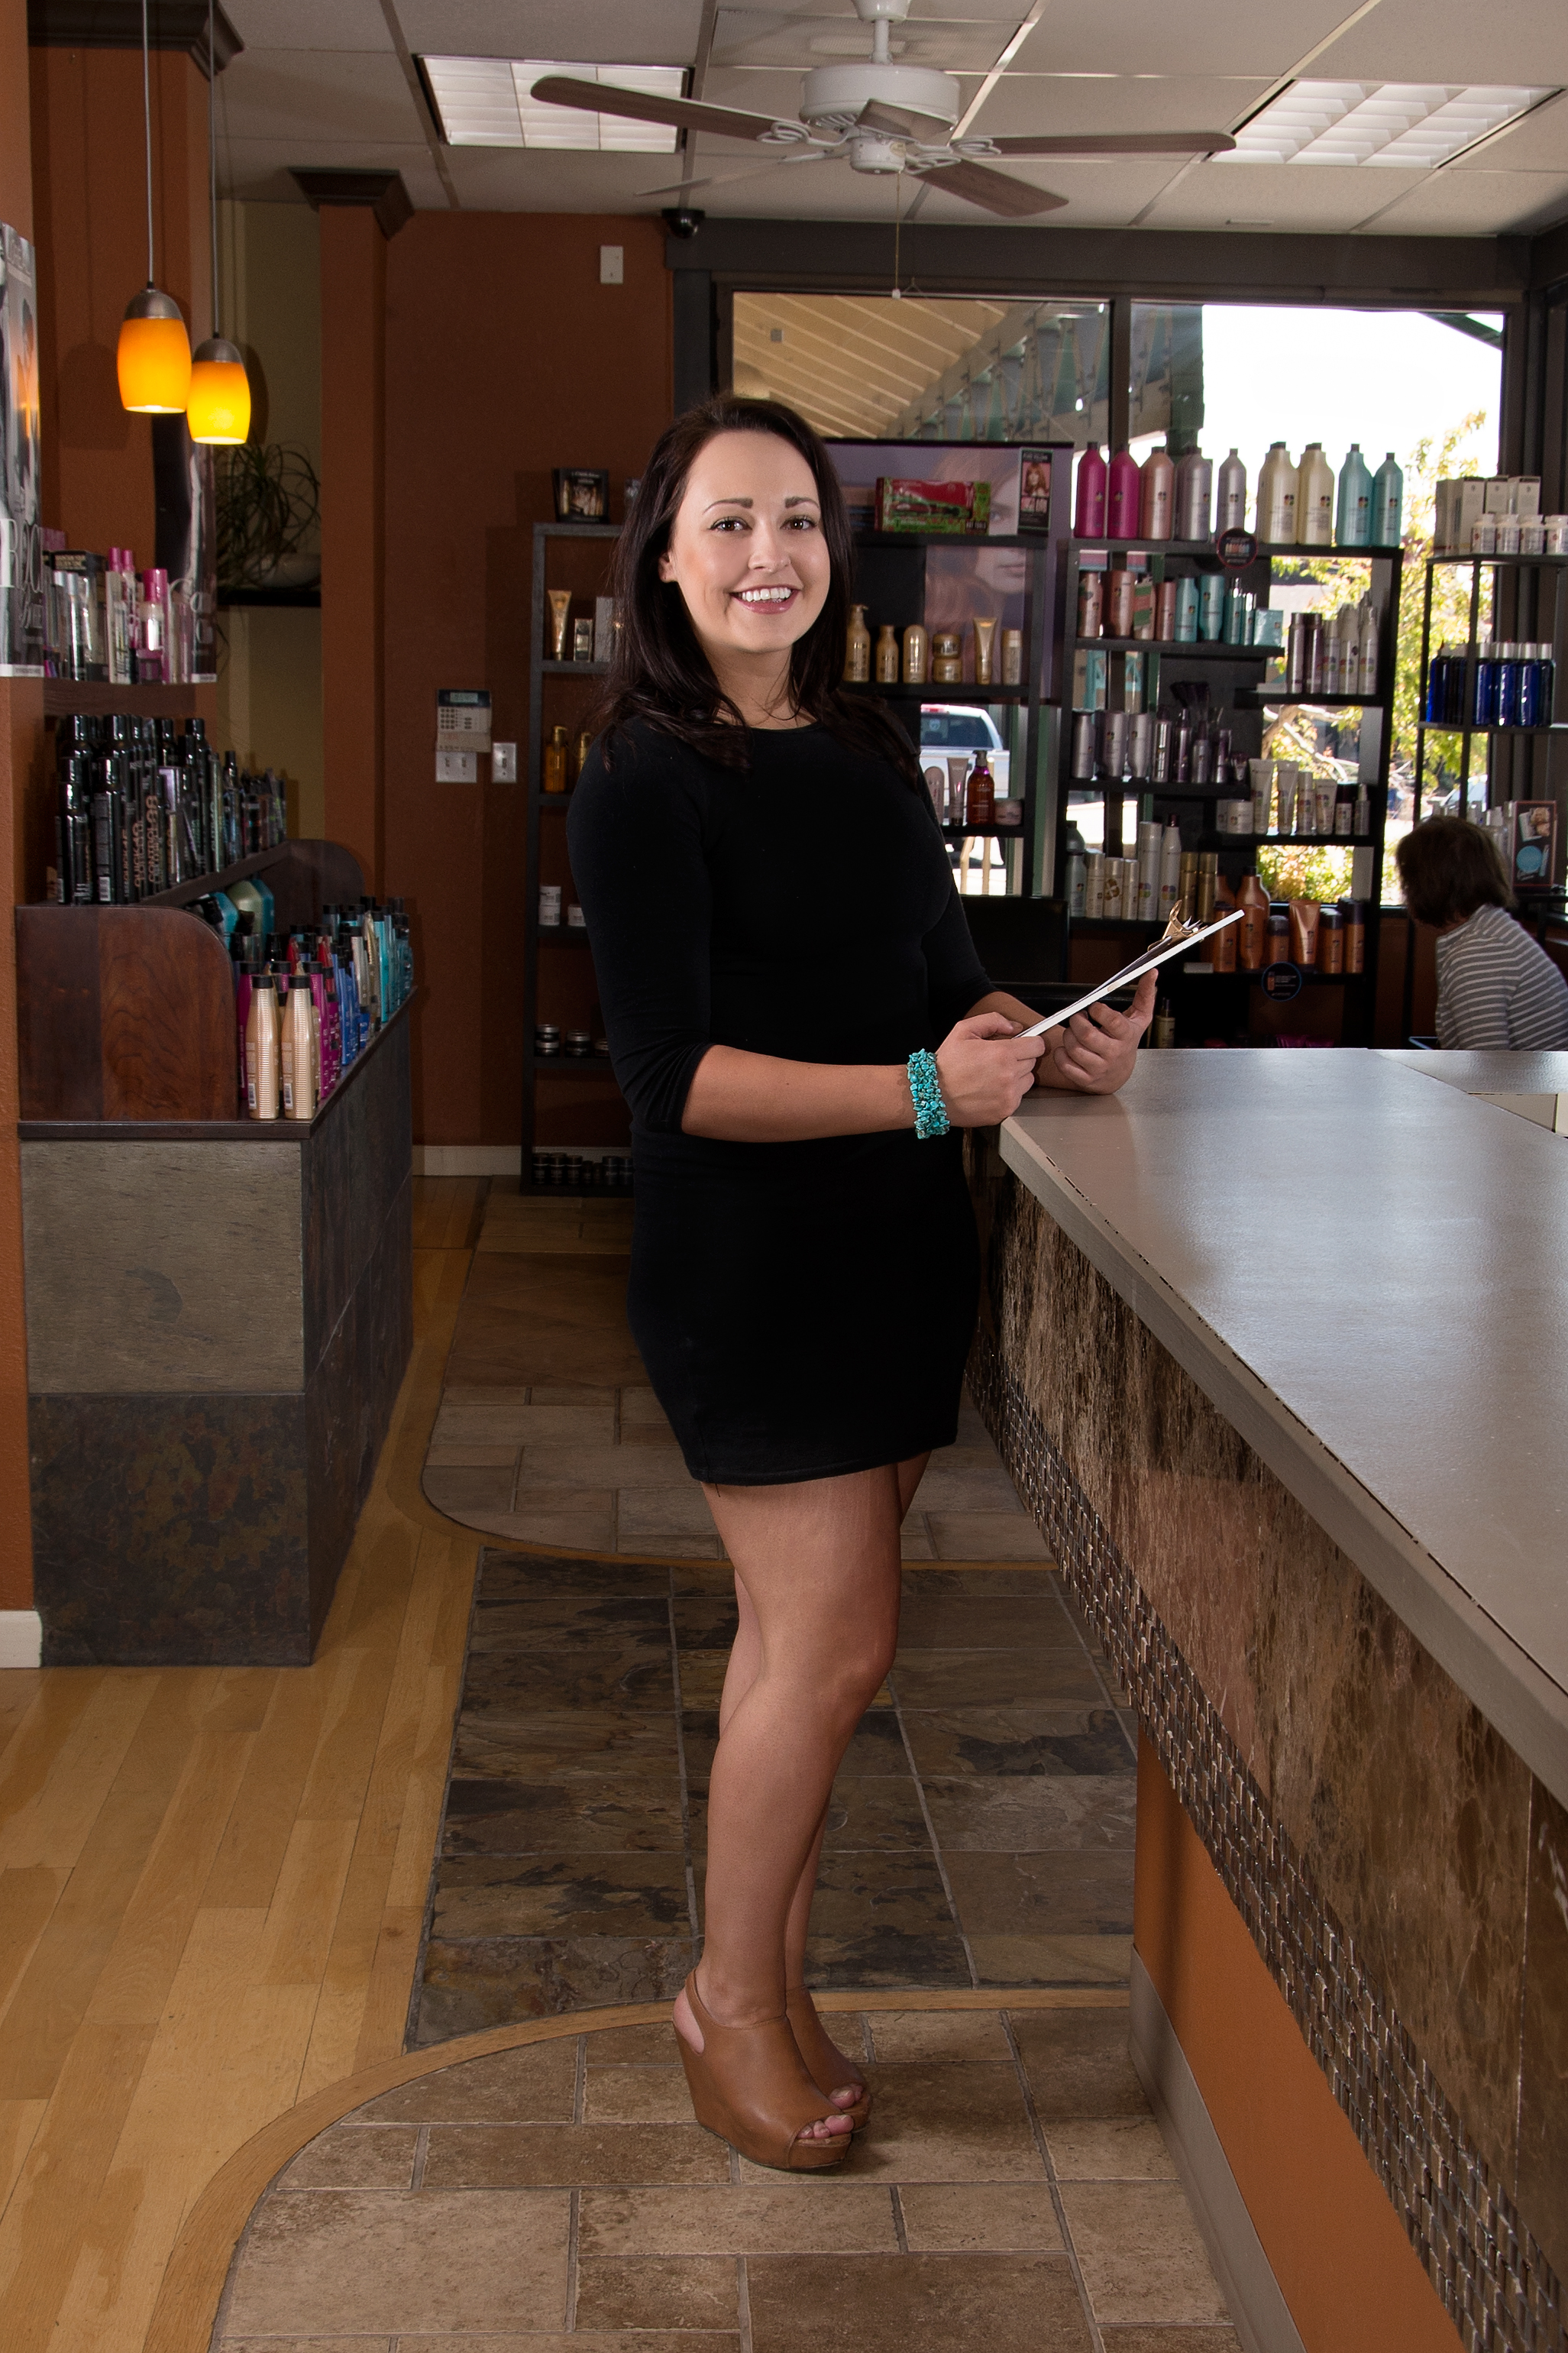 Samantha Hunts - Receptionist at Salon Nevaeh in Littleton, CO